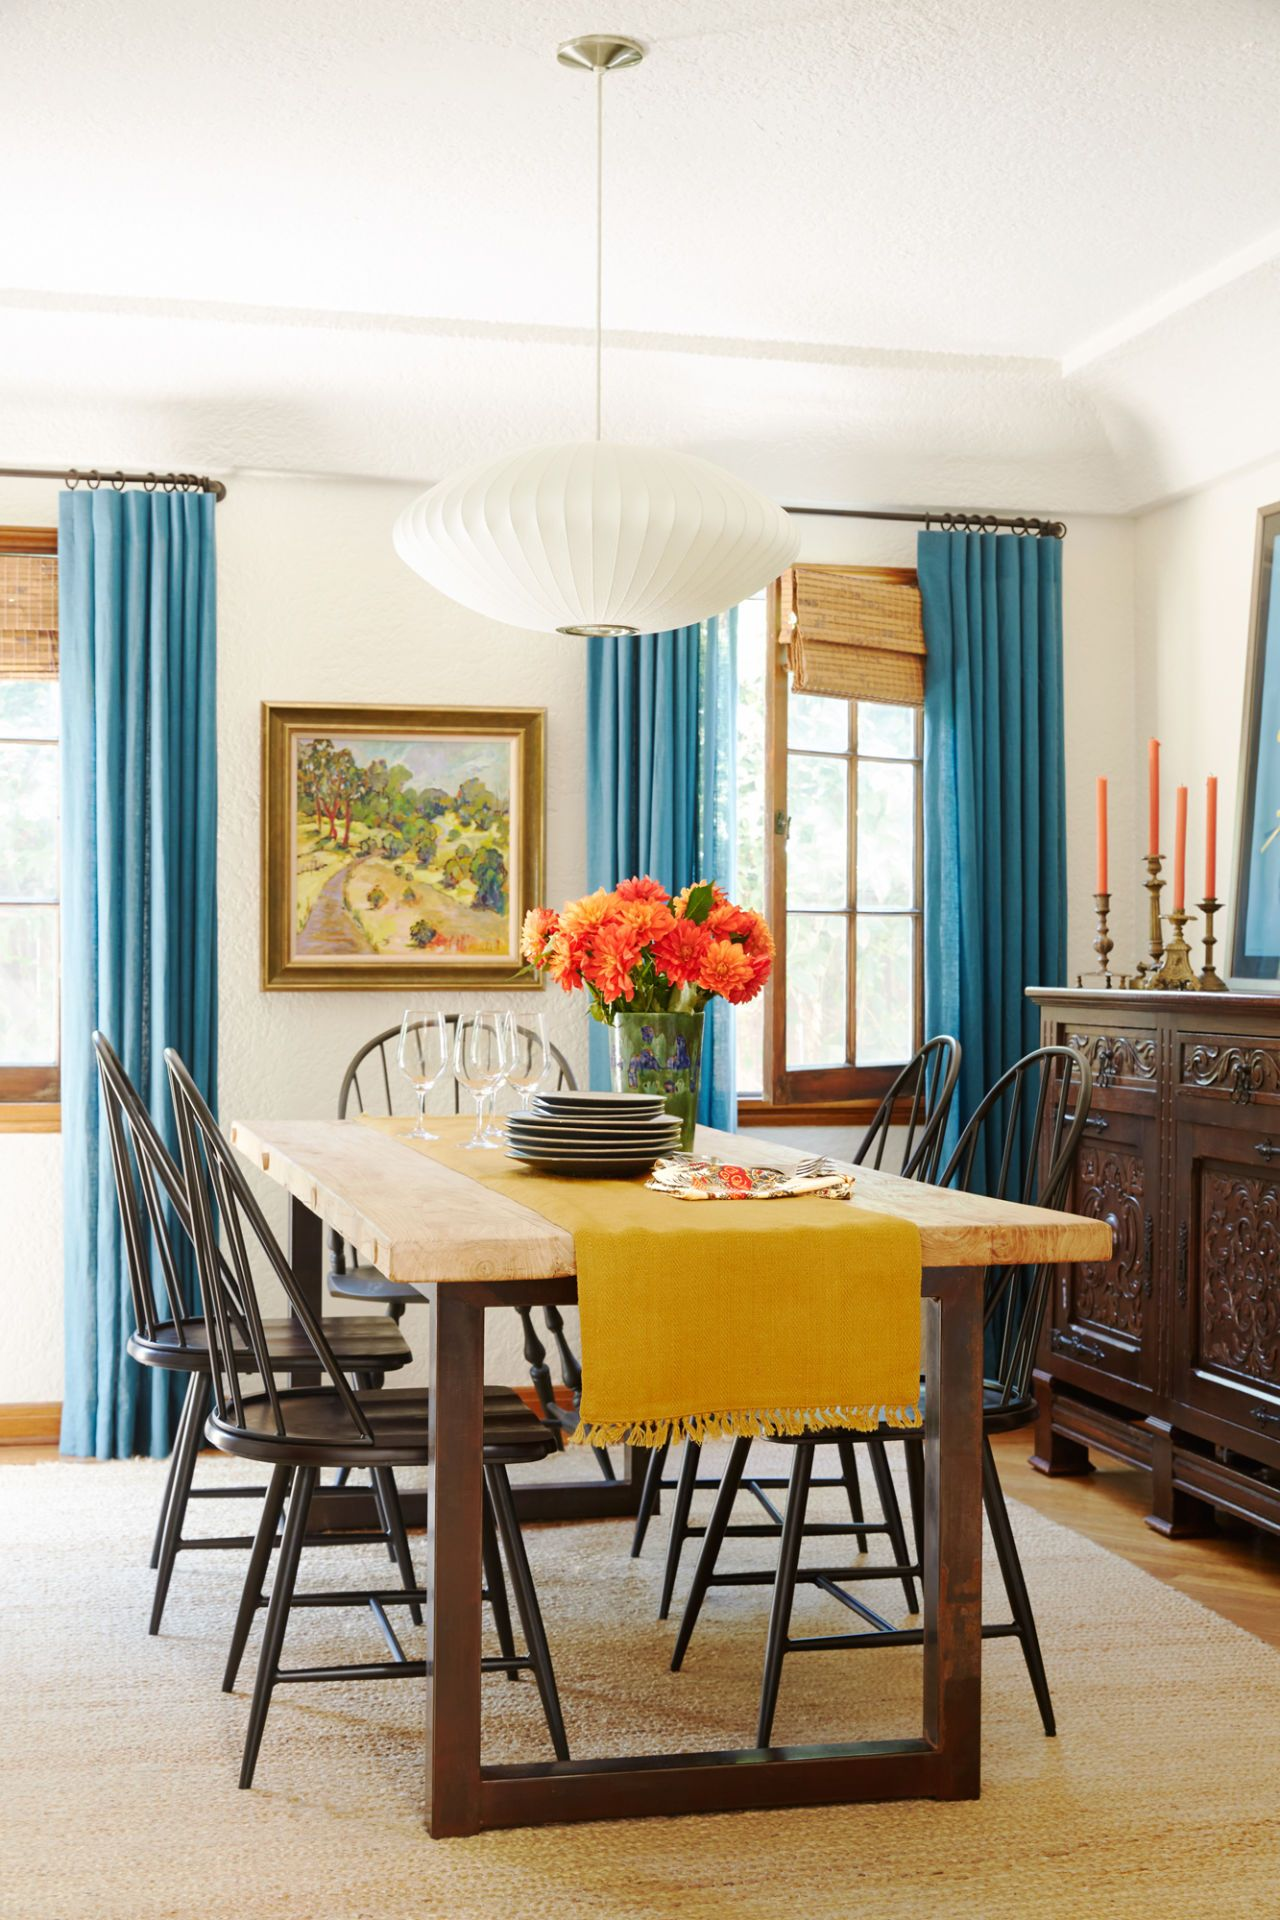 The grownupus guide to decorating with color calming colors